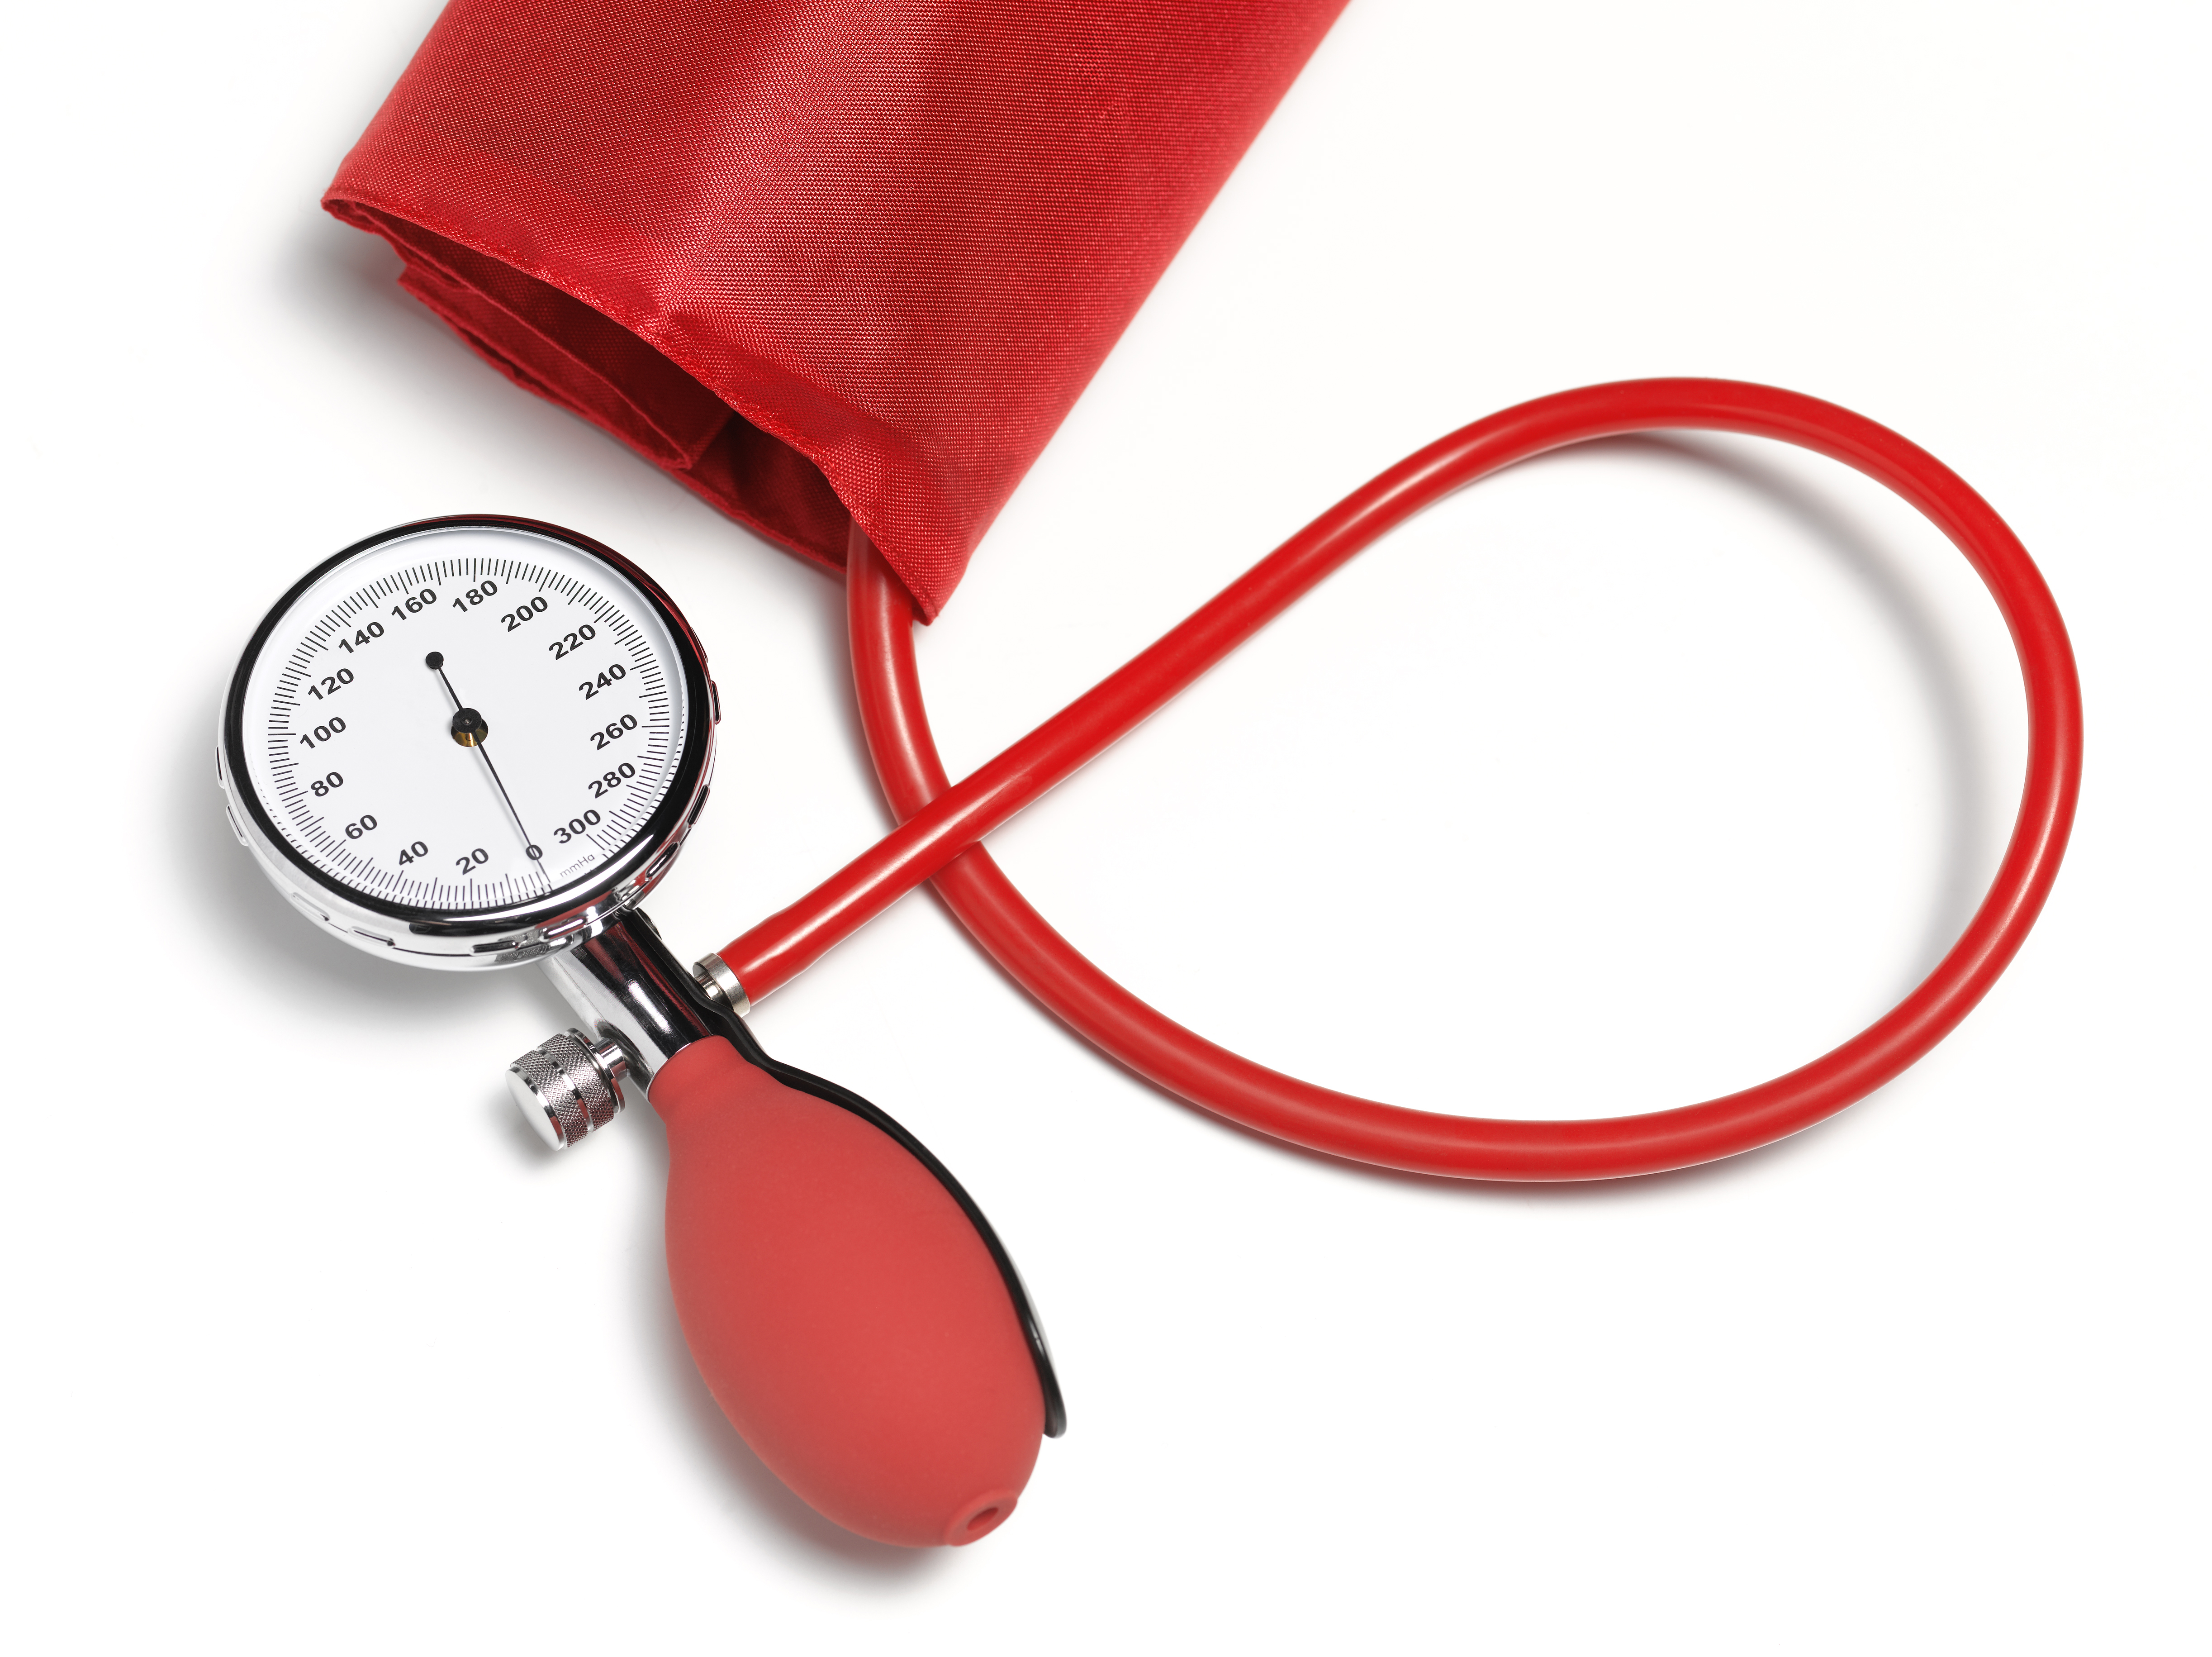 Why Blood Pressure Is Rising Worldwide